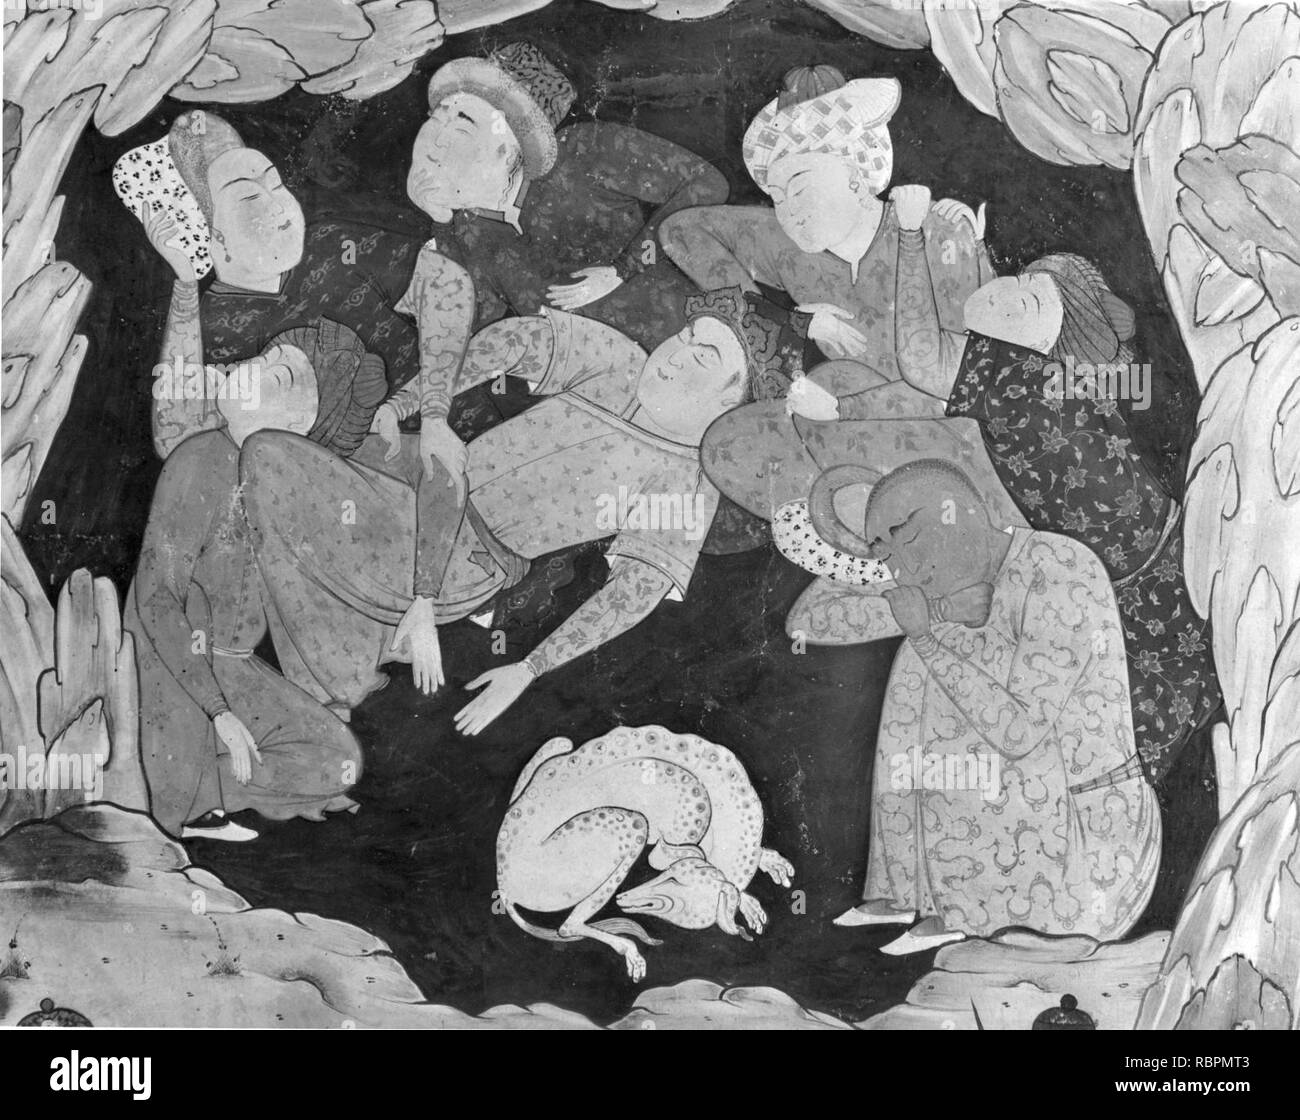 'The Seven Sleepers of Ephesus Discovered by Alexander the Great', Folio from a Falnama (Book of Omens) - Stock Image